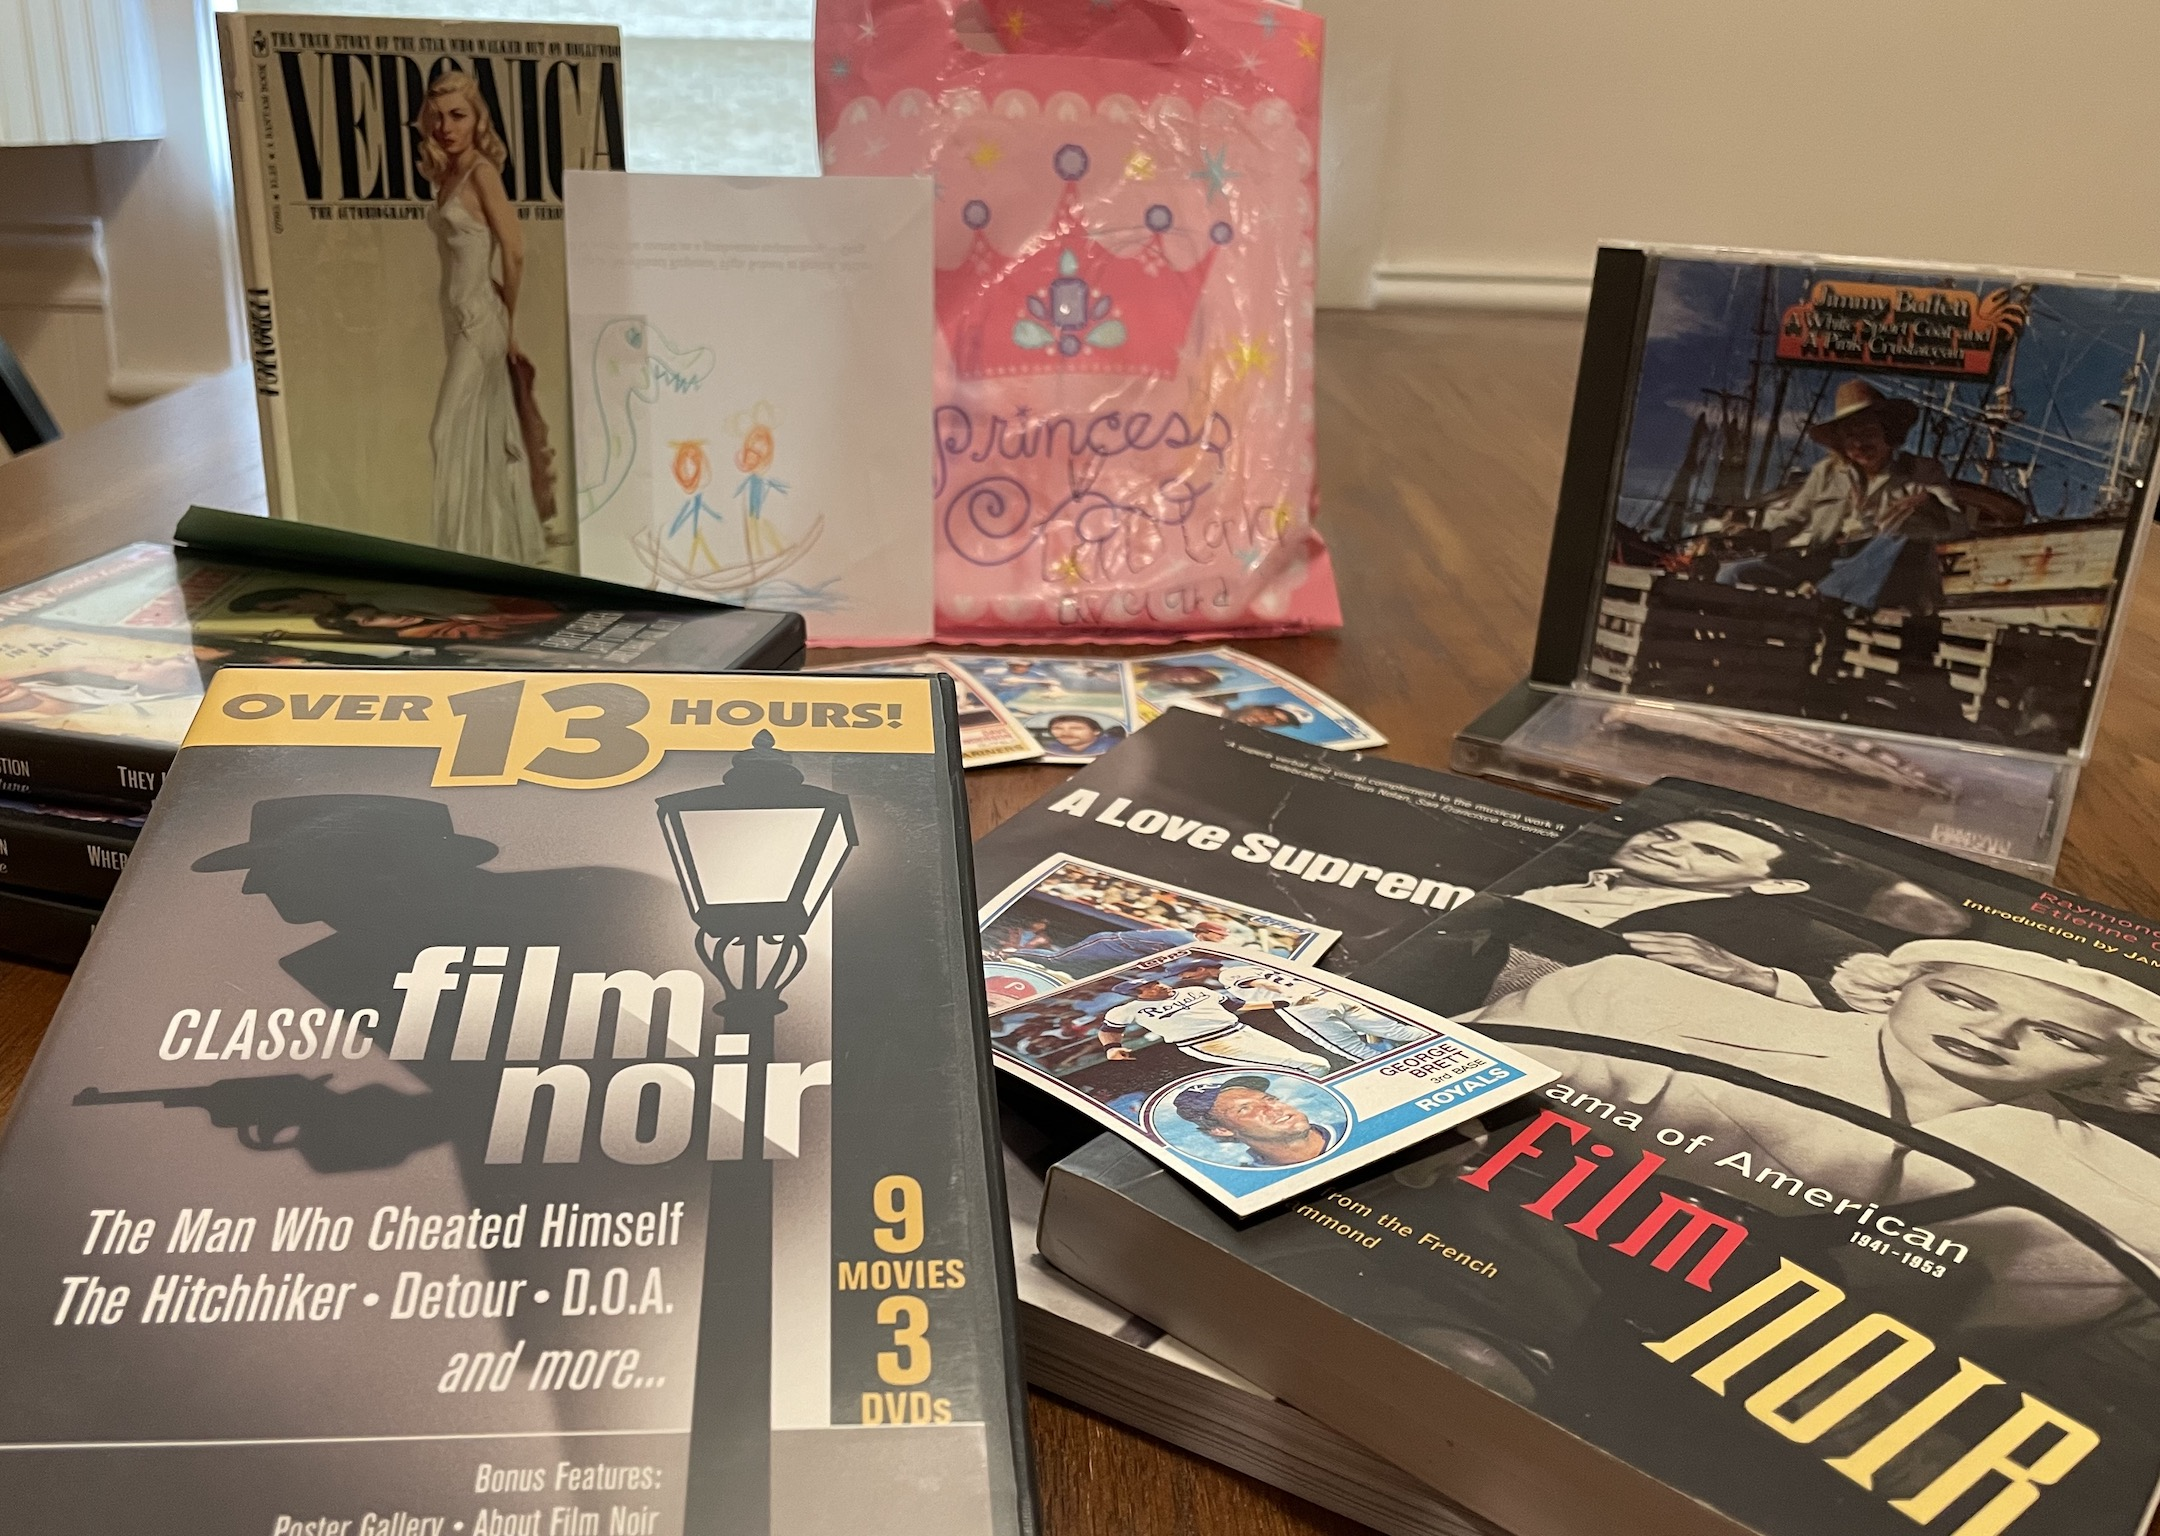 On a table are film noir DVDs, Jimmy Buffett CDs, baseball cards, books and a pink plastic Princess bag